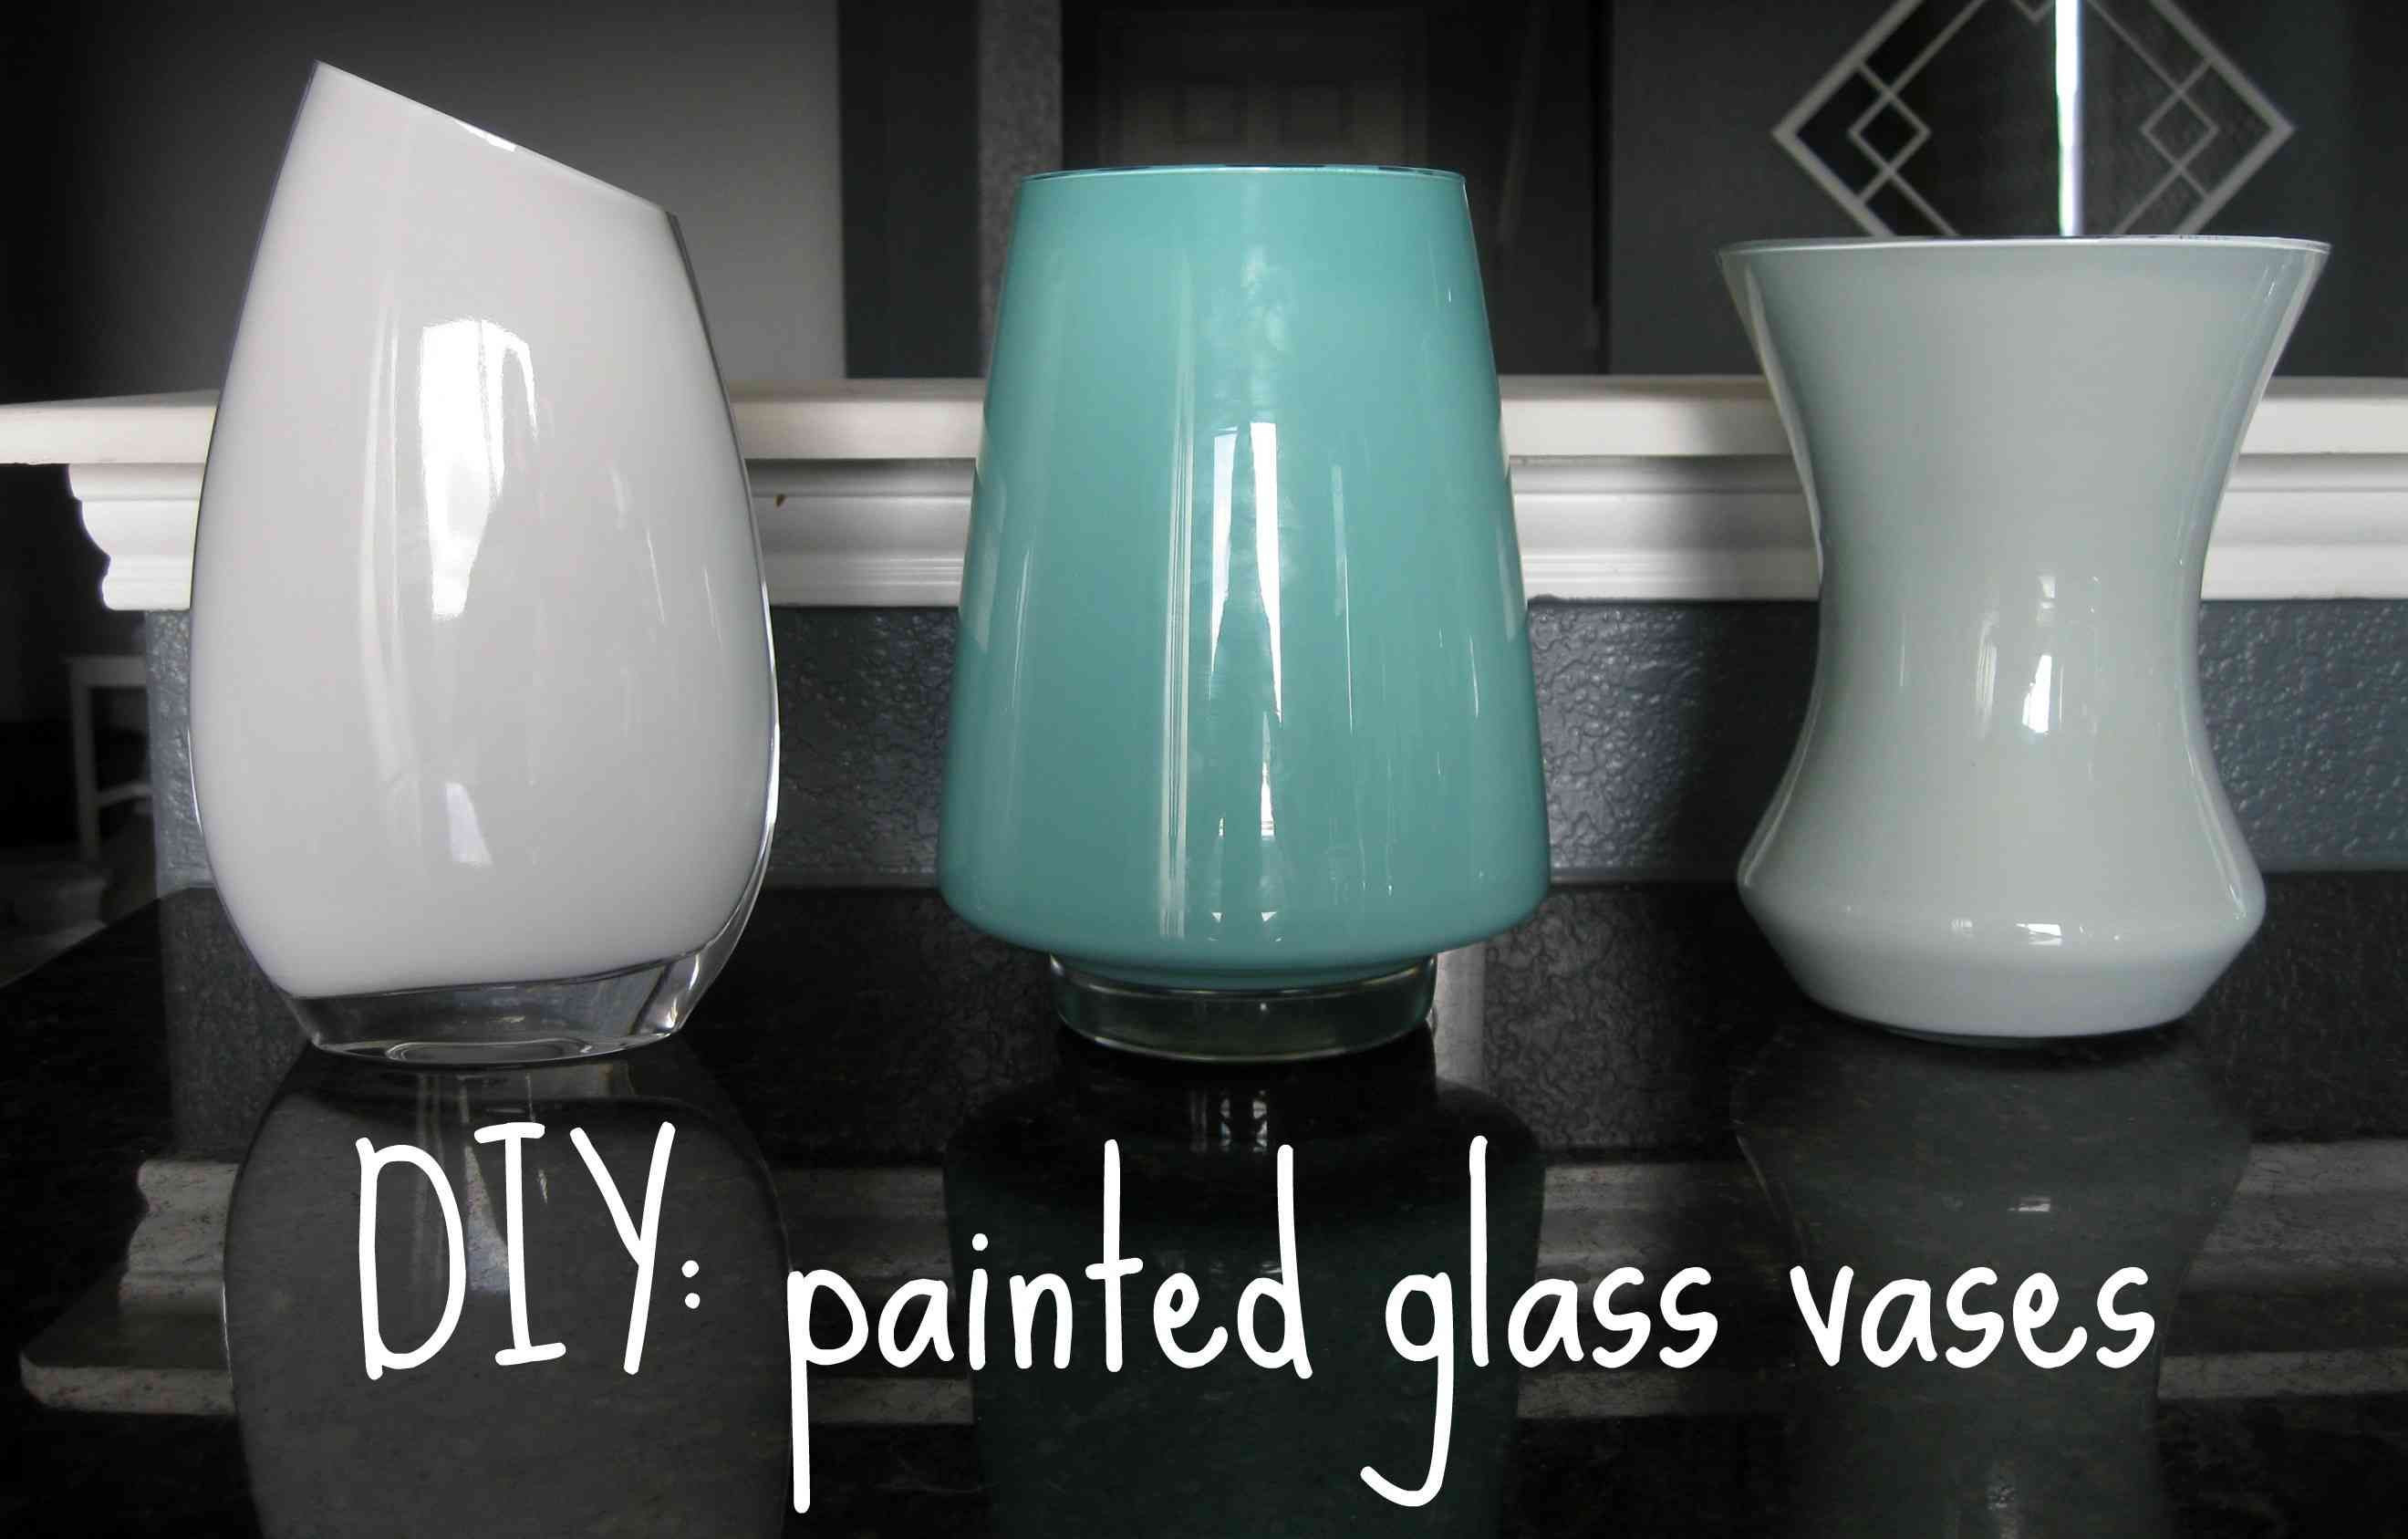 13 Great Blue Vases wholesale 2021 free download blue vases wholesale of 23 blue crystal vase the weekly world in diy painted glass vasesh vases how to paint vasesi 0d via conejita info